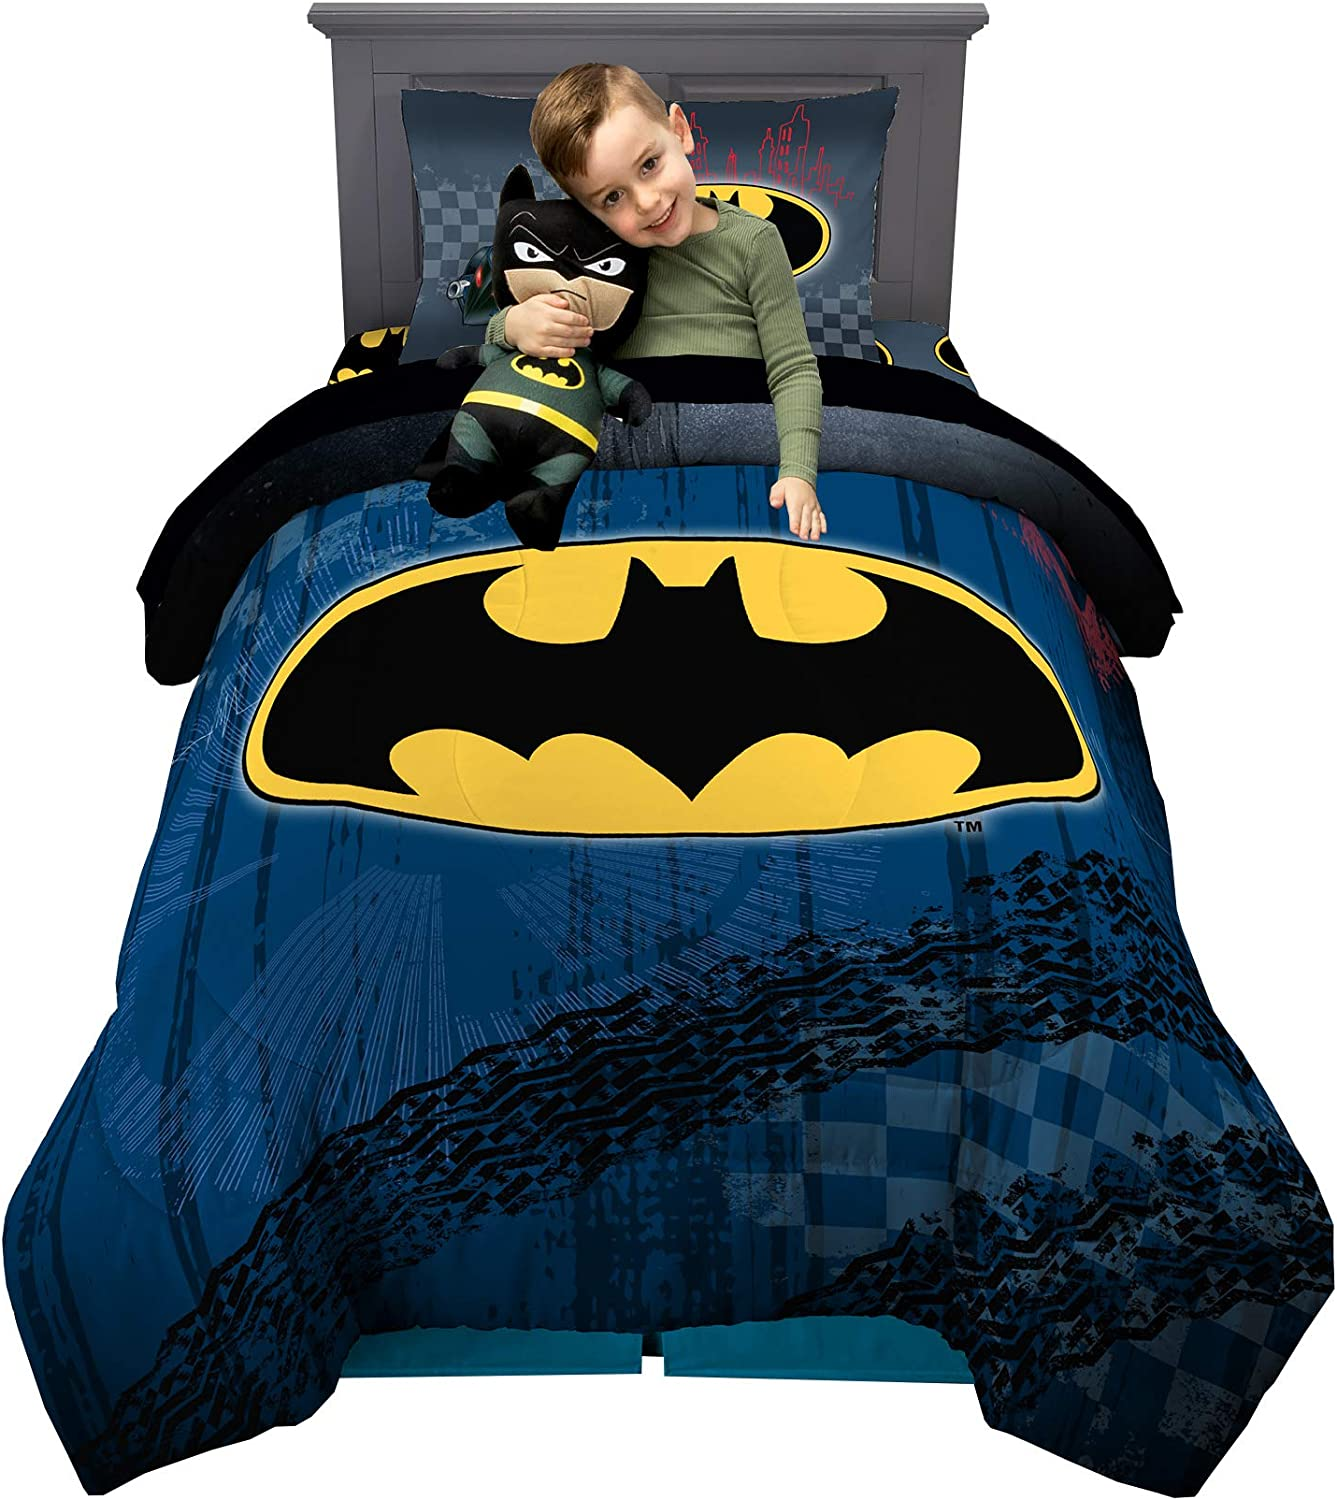 Soft Batman Kids Bed Sheet Set